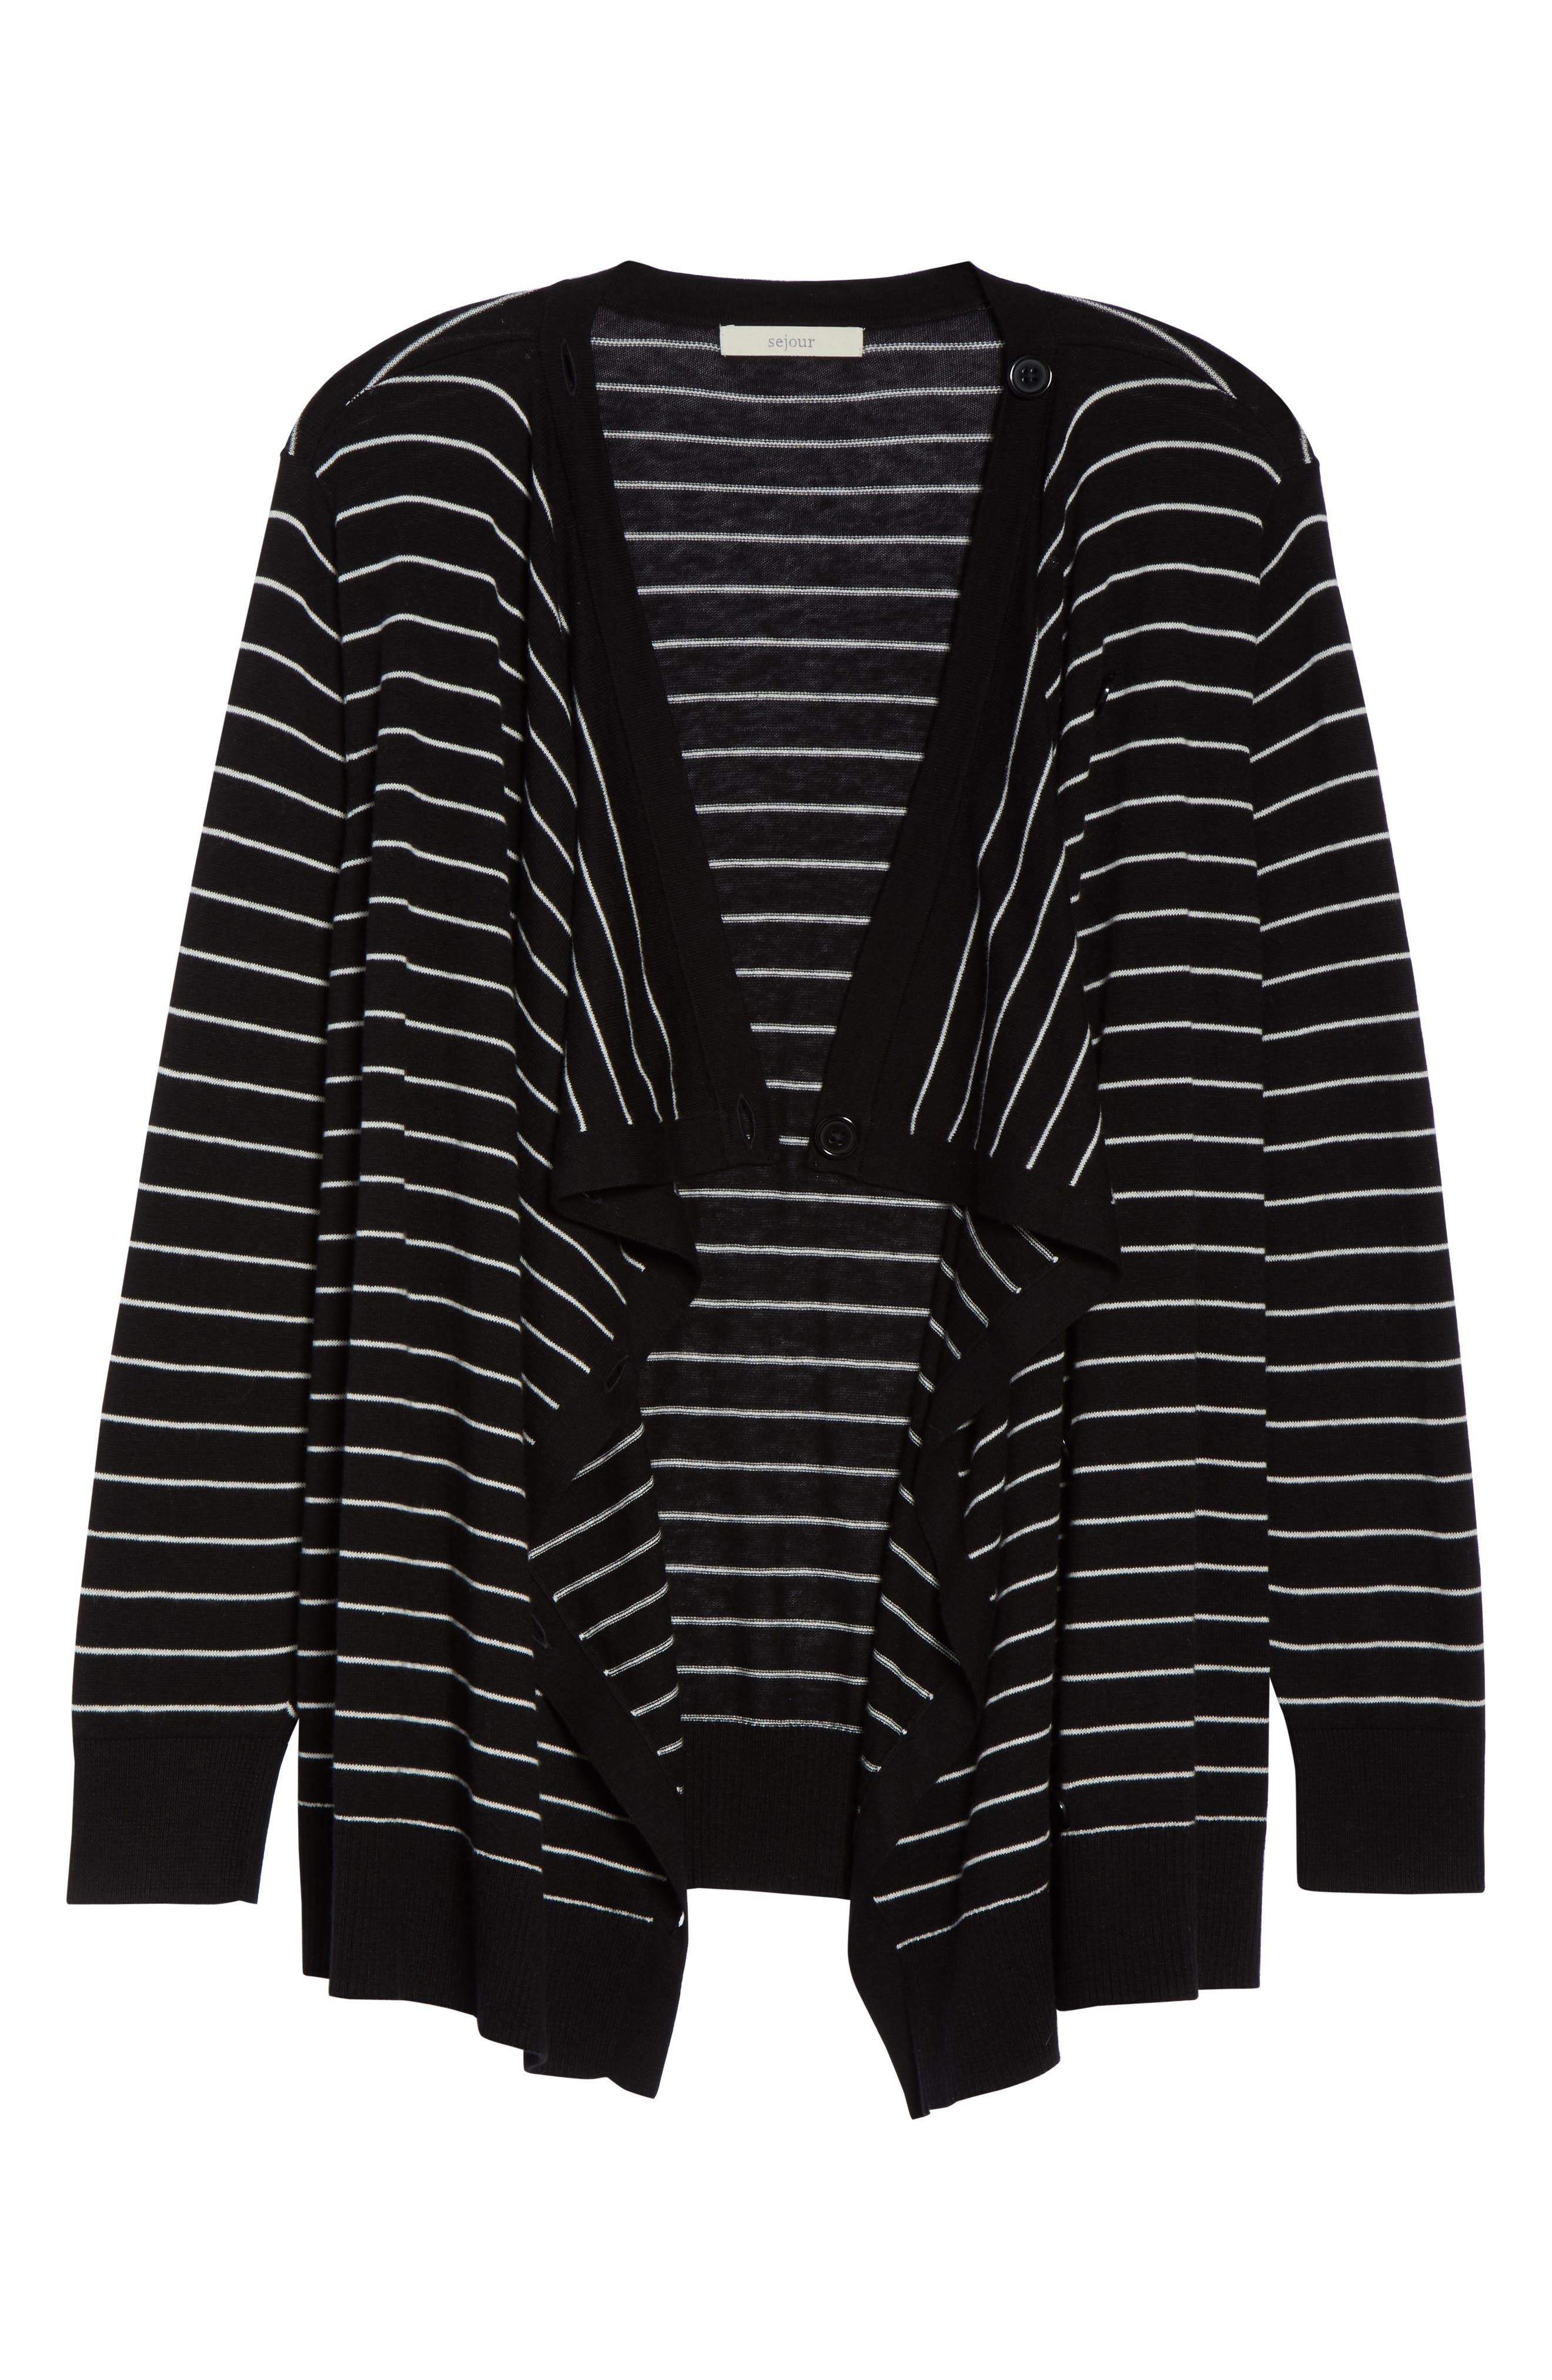 Button-Up Waterfall Cardigan,                             Alternate thumbnail 6, color,                             BLACK- IVORY DELIA STRIPE